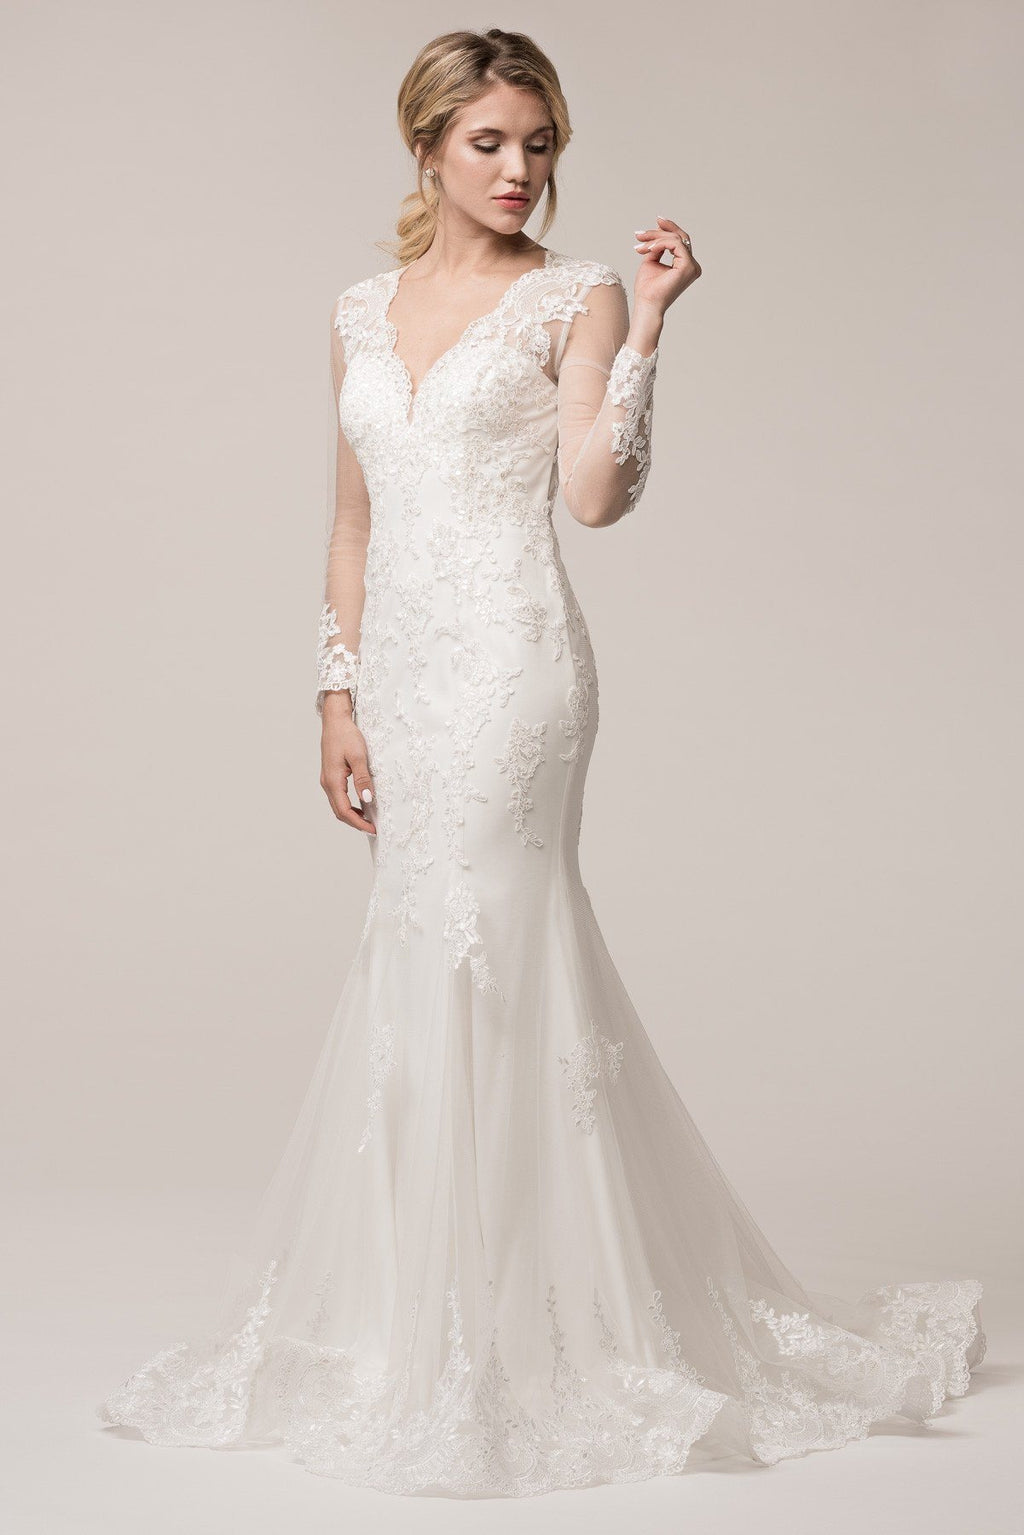 Long sleeve lace mermaid wedding dress BC#TTW16499 - Simply Fab Dress